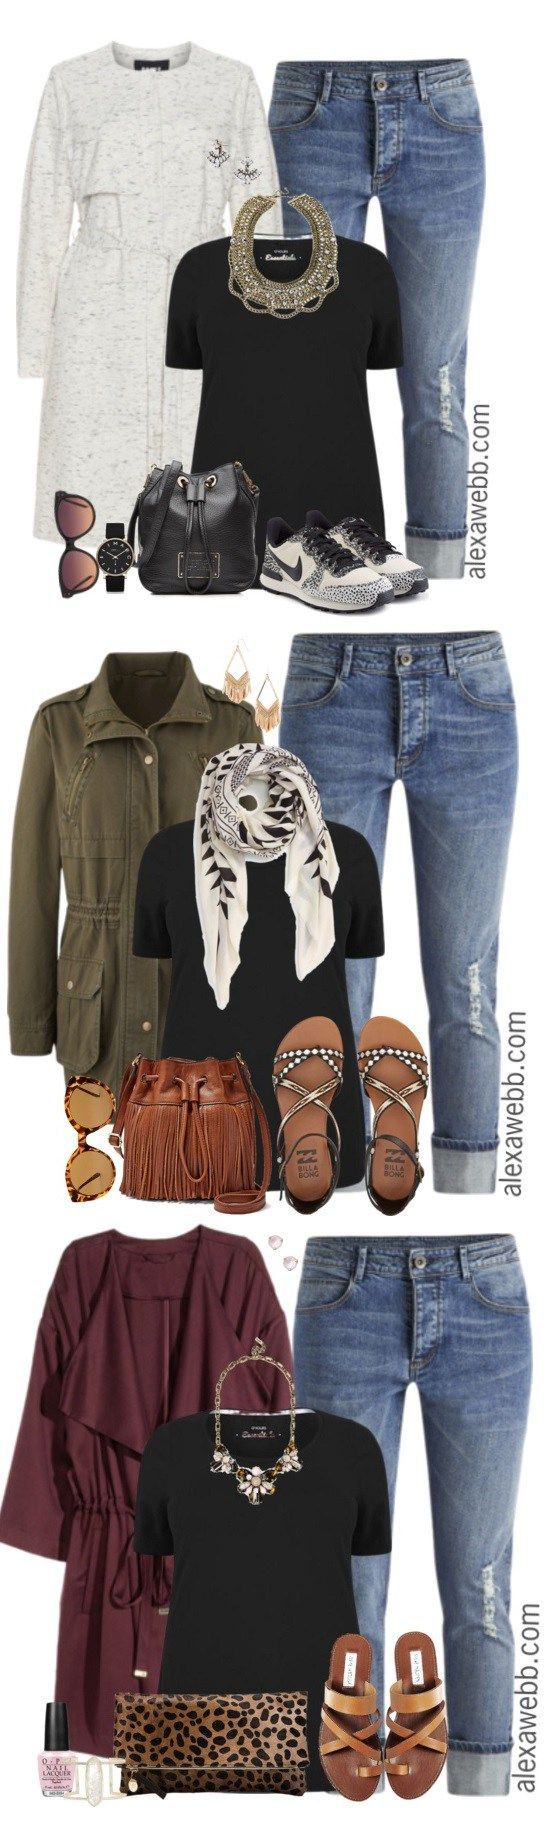 Plus Size Outfit Ideas - Plus Size Jeans and a Black Tee - Plus Size Fashion for Women - alexawebb.com #alexawebb #plus #size